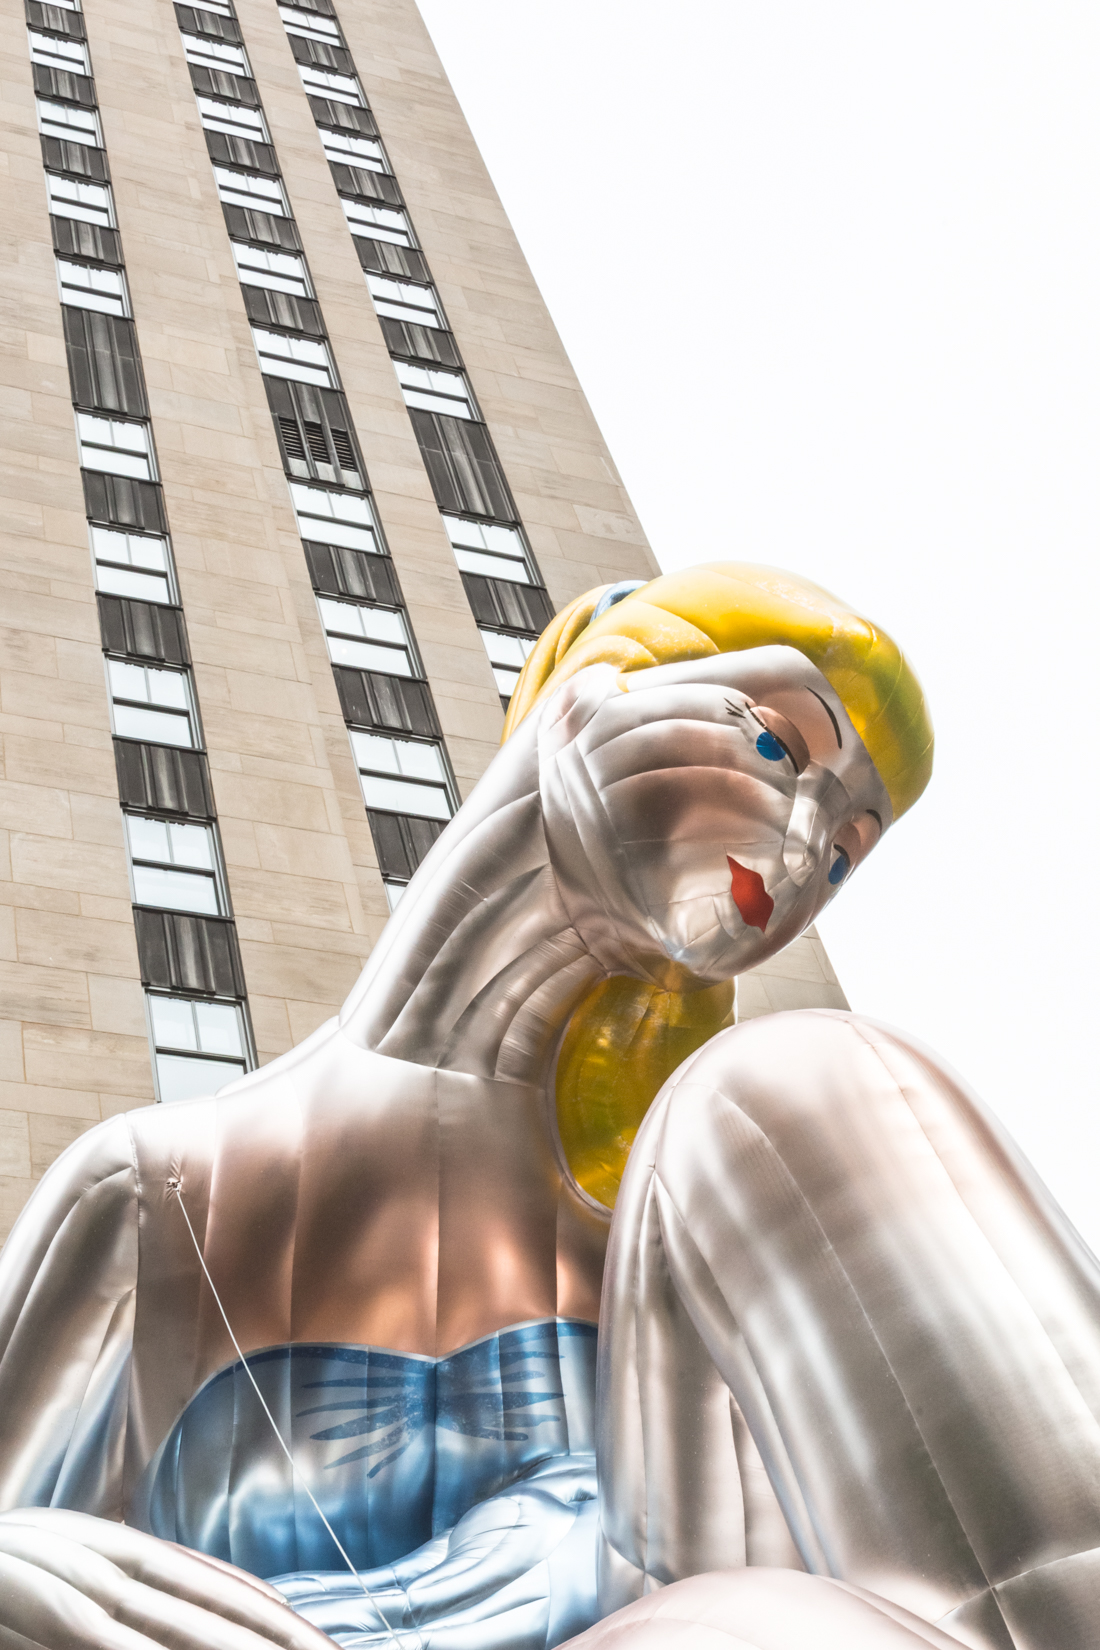 inflatable_ballerina_jeff_koons_rockefeller_center_new_york_copyright_Pauline_Privez_paulinefashionblog_com-1